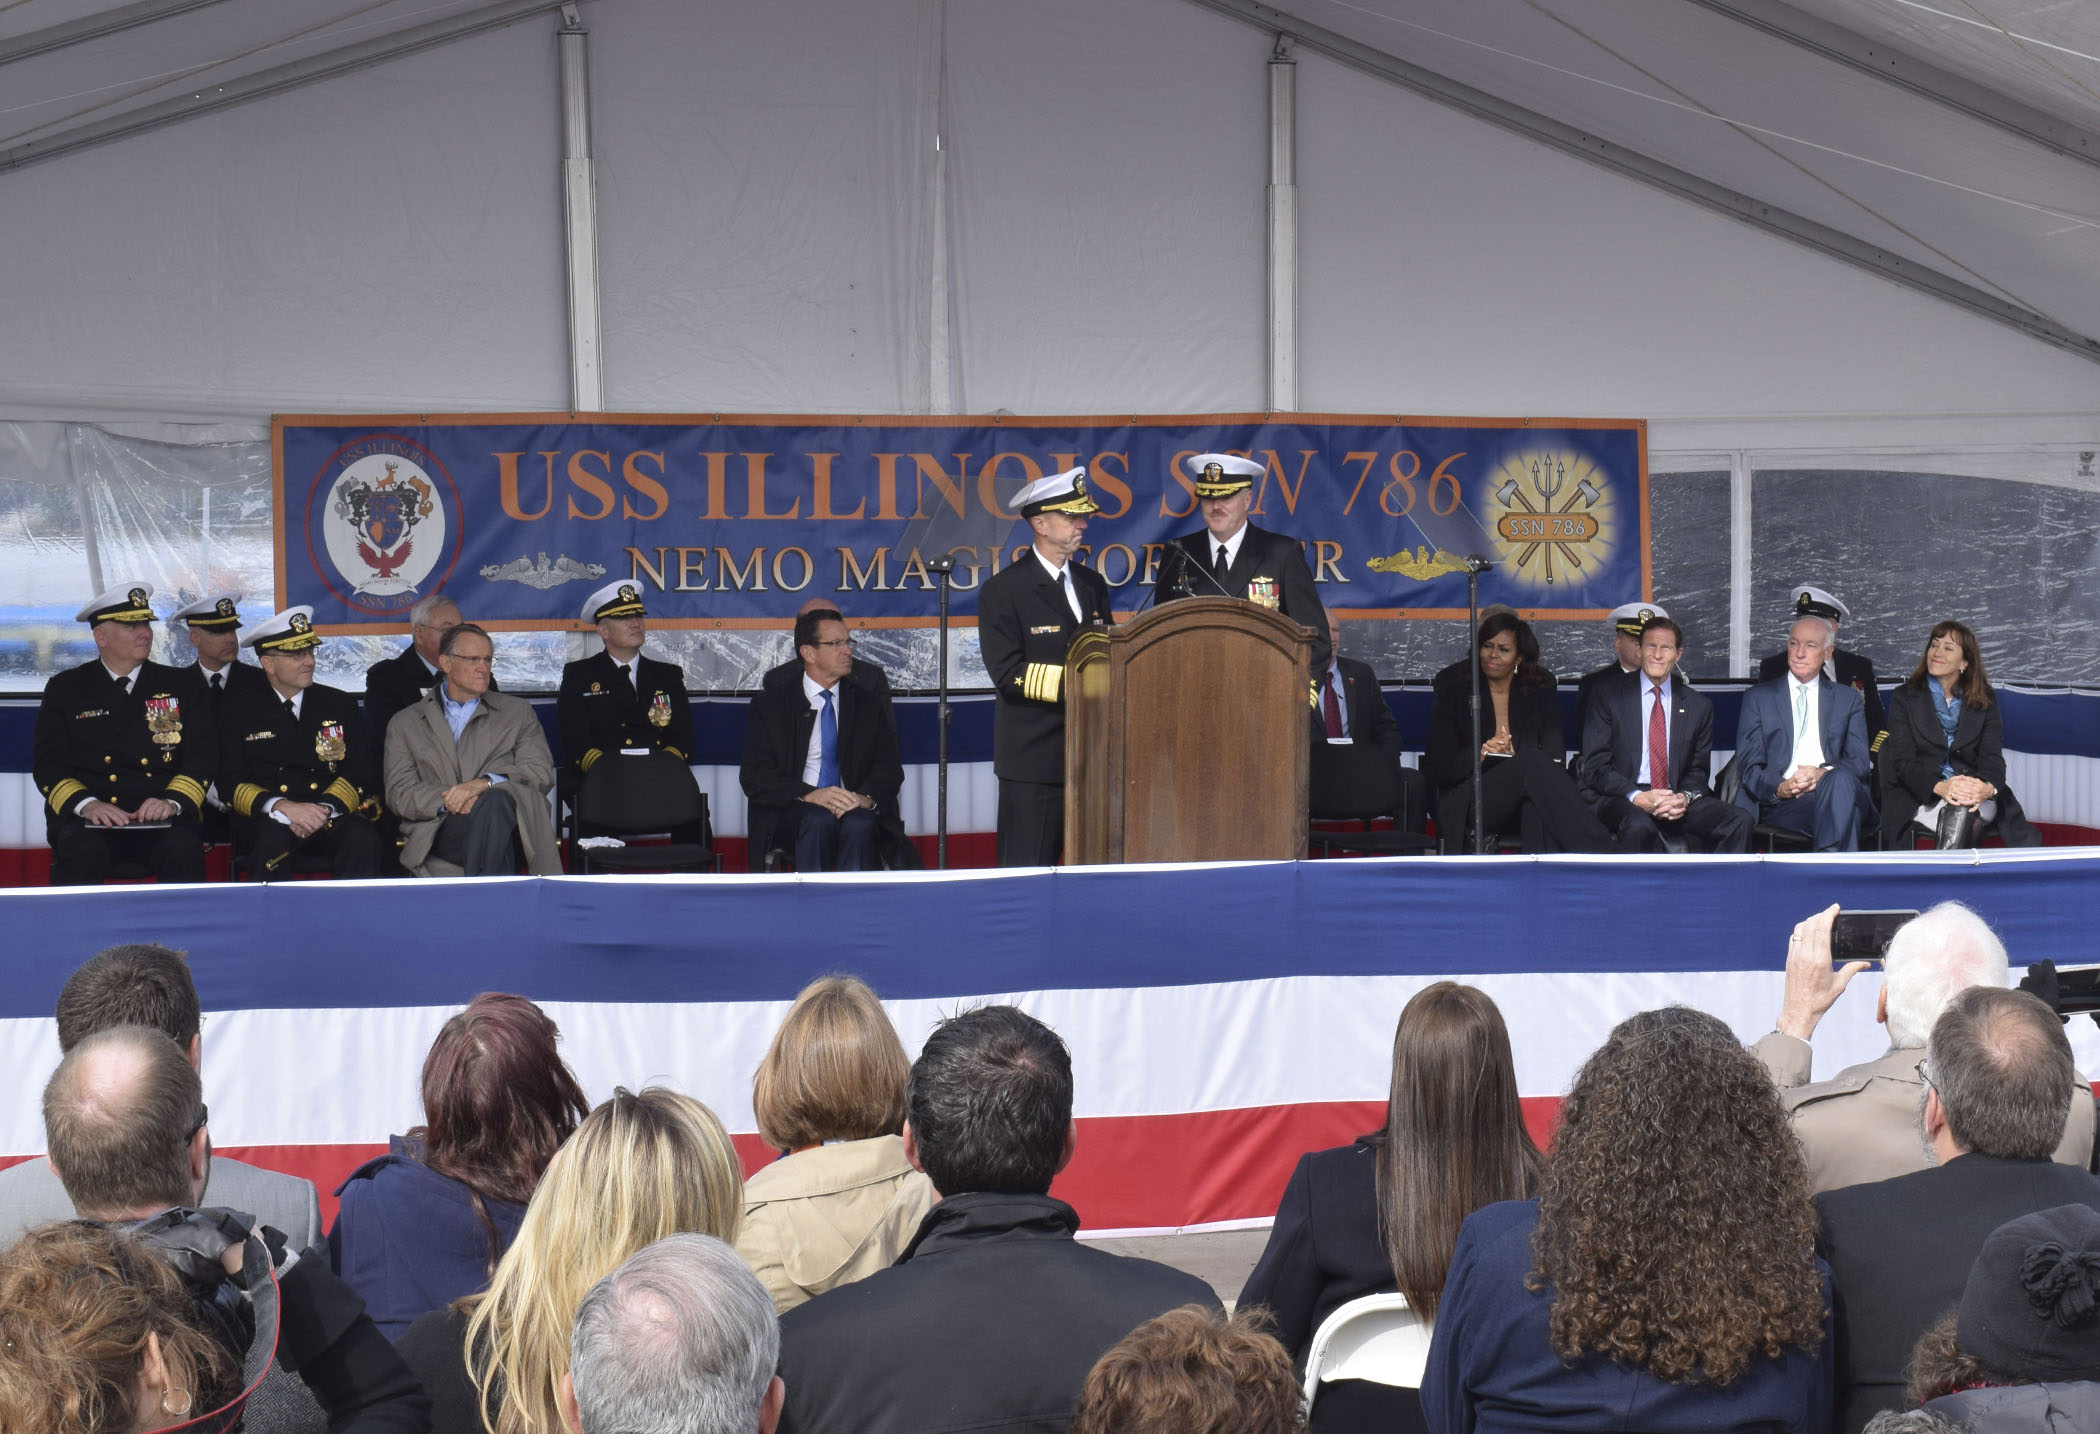 USS ILLINOIS SSN-786 Commissioning Ceremony Bild: U.S. Navy